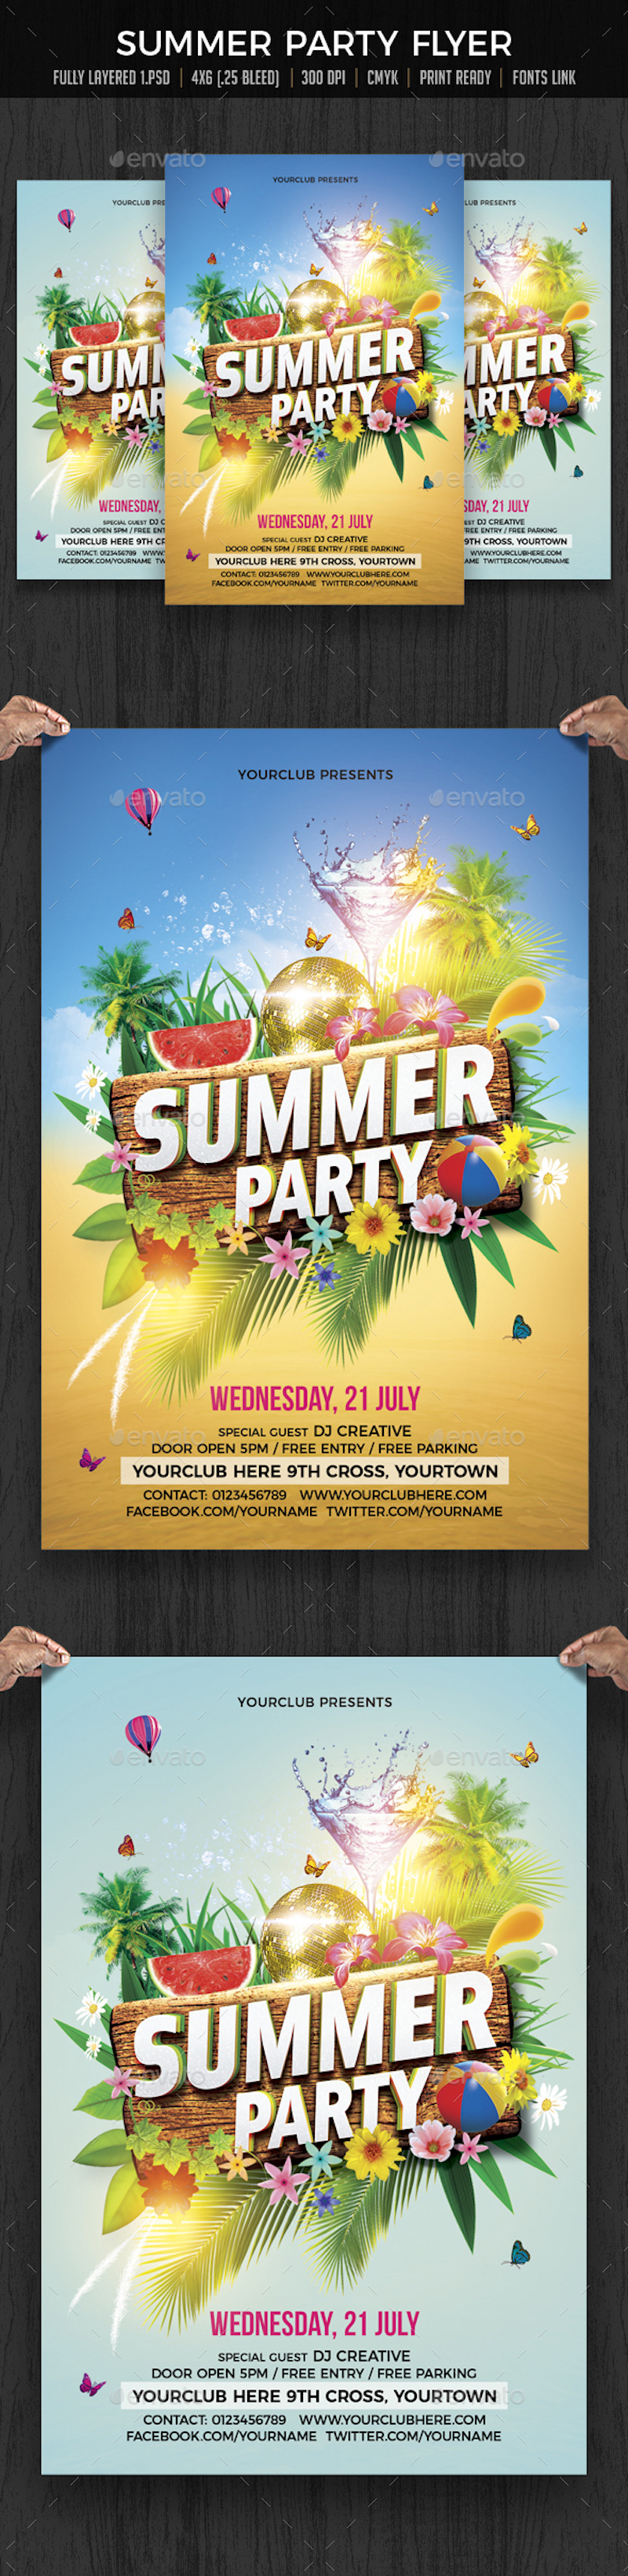 summer beach party flyer print ad templates